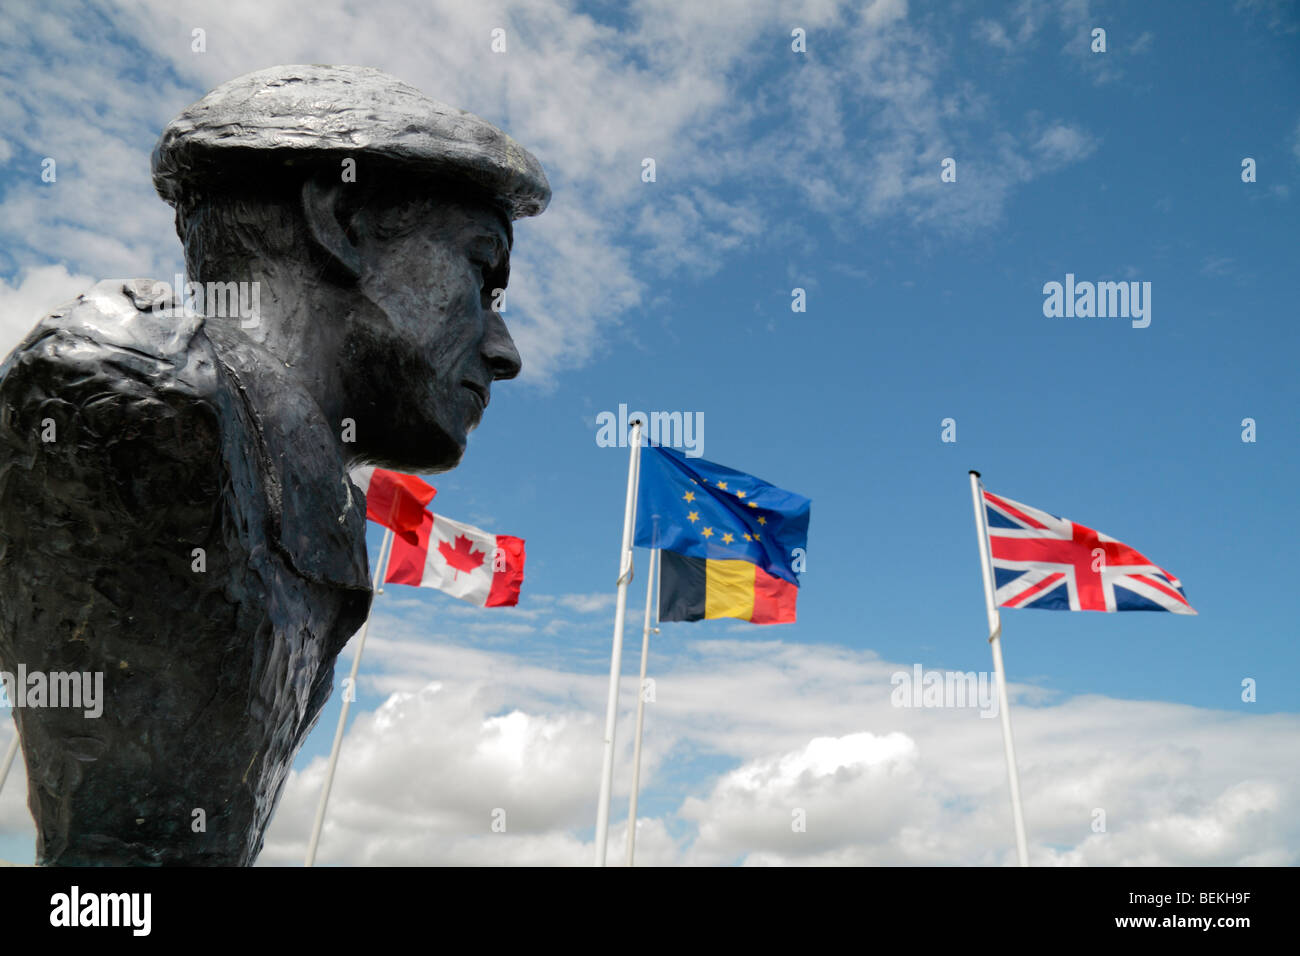 The EU and World War Two flags fly beside the bust to Lieutenant Colonel T Otway at the German Battery at Merville, - Stock Image